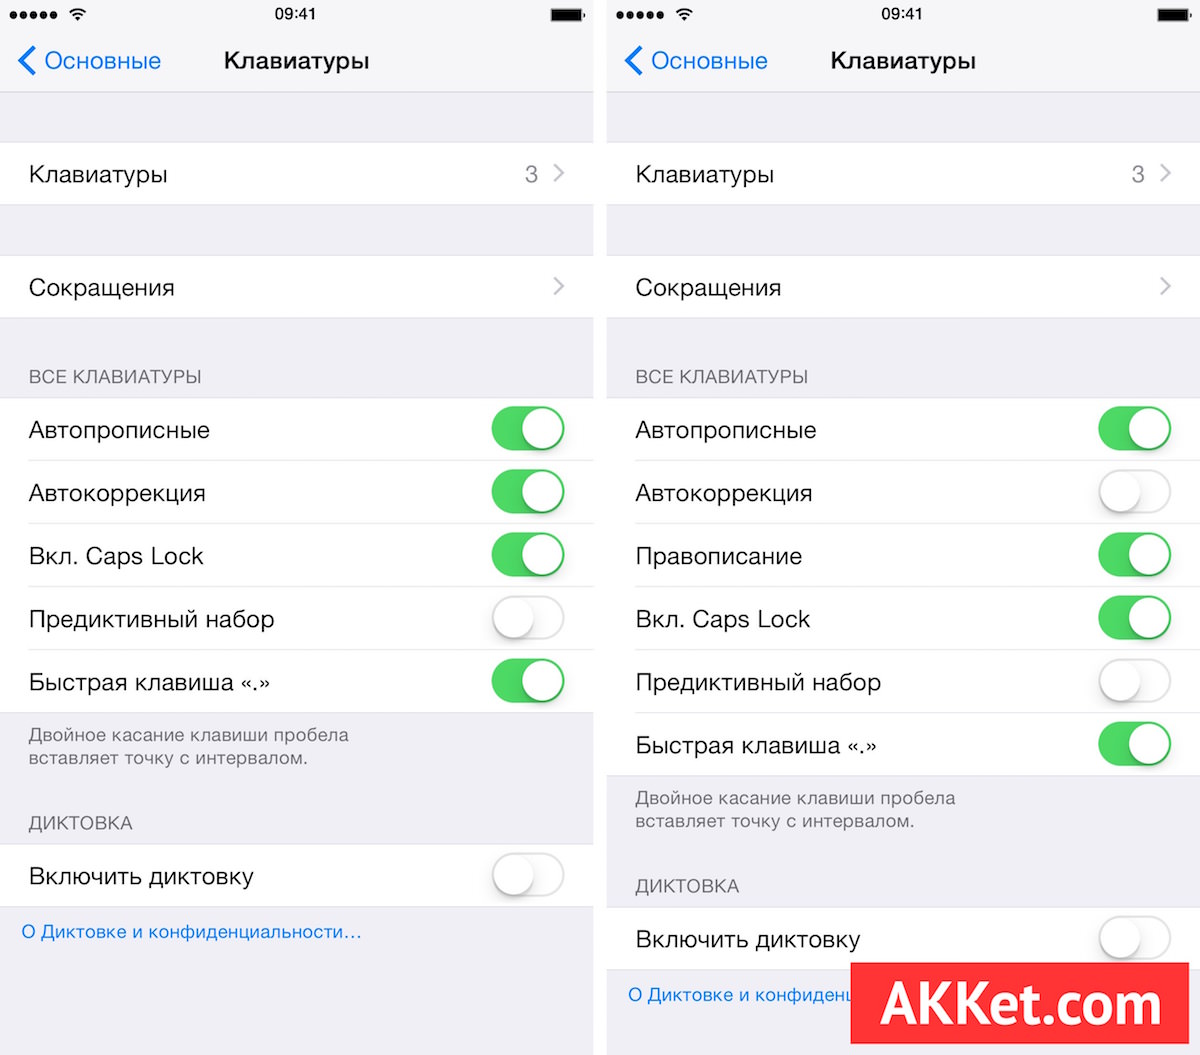 OS X iOS orfo iPhone iPad russia russian 2